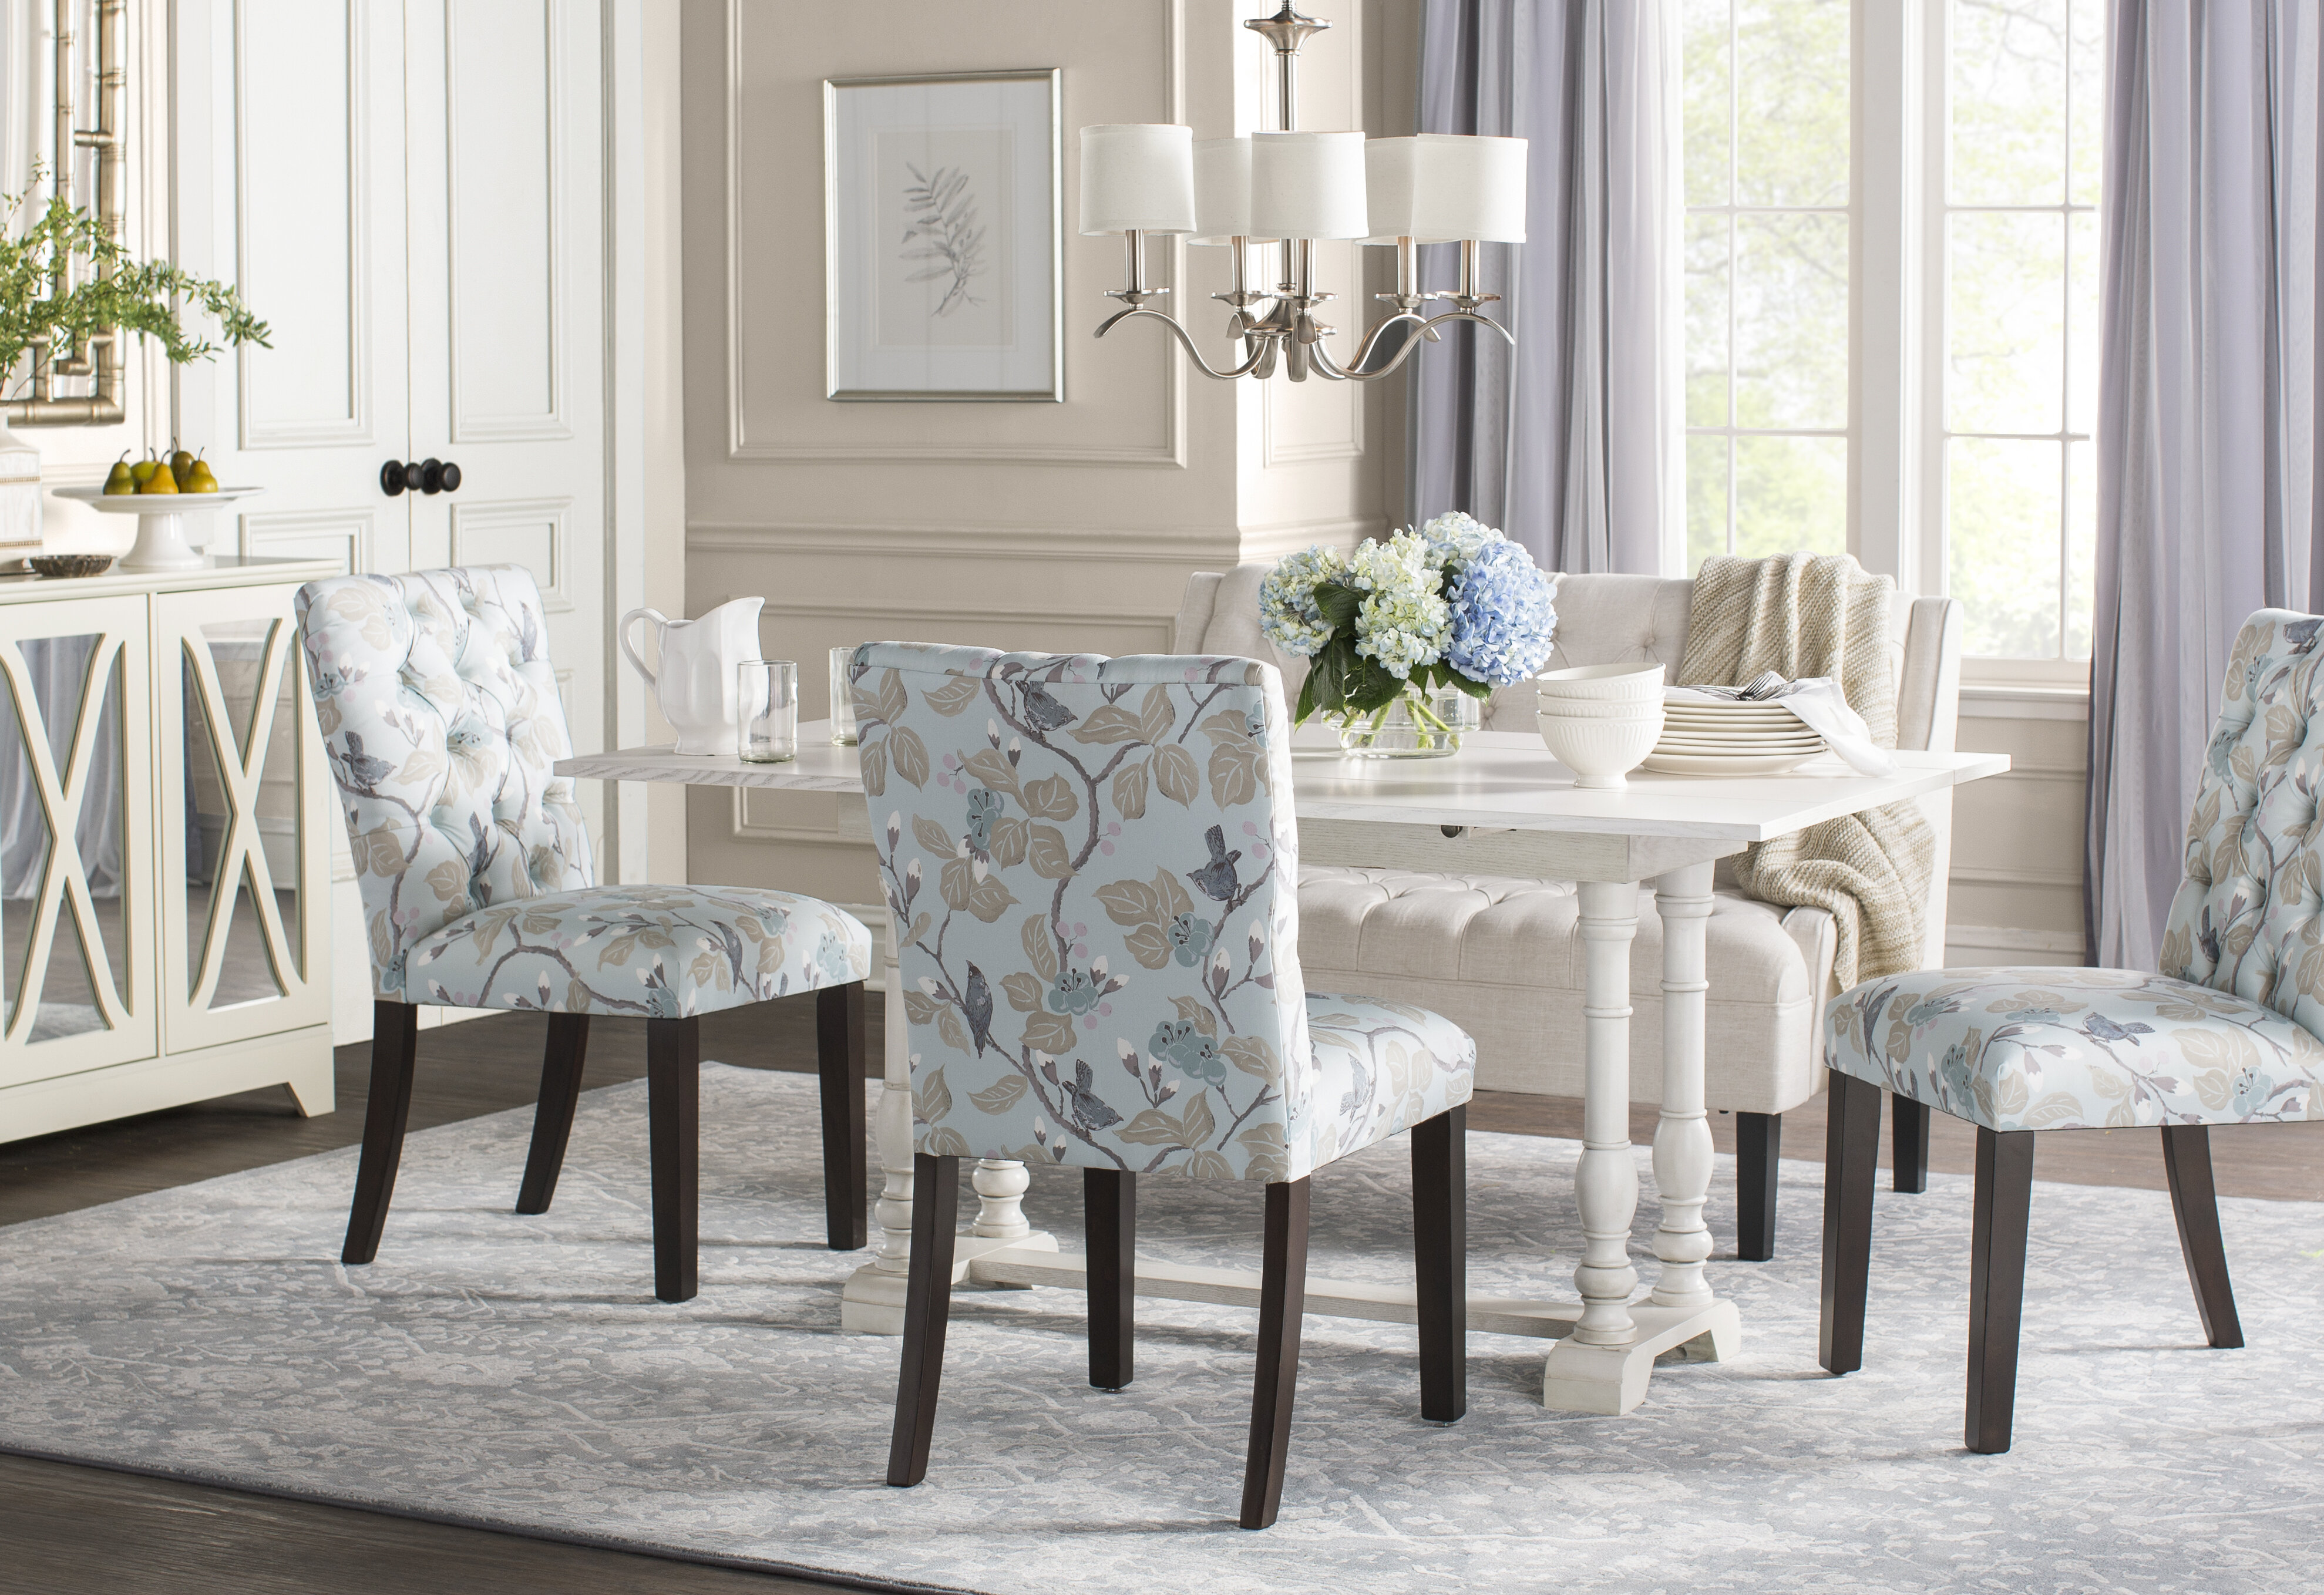 Super How To Find The Perfect Dining Table Height Wayfair Interior Design Ideas Helimdqseriescom